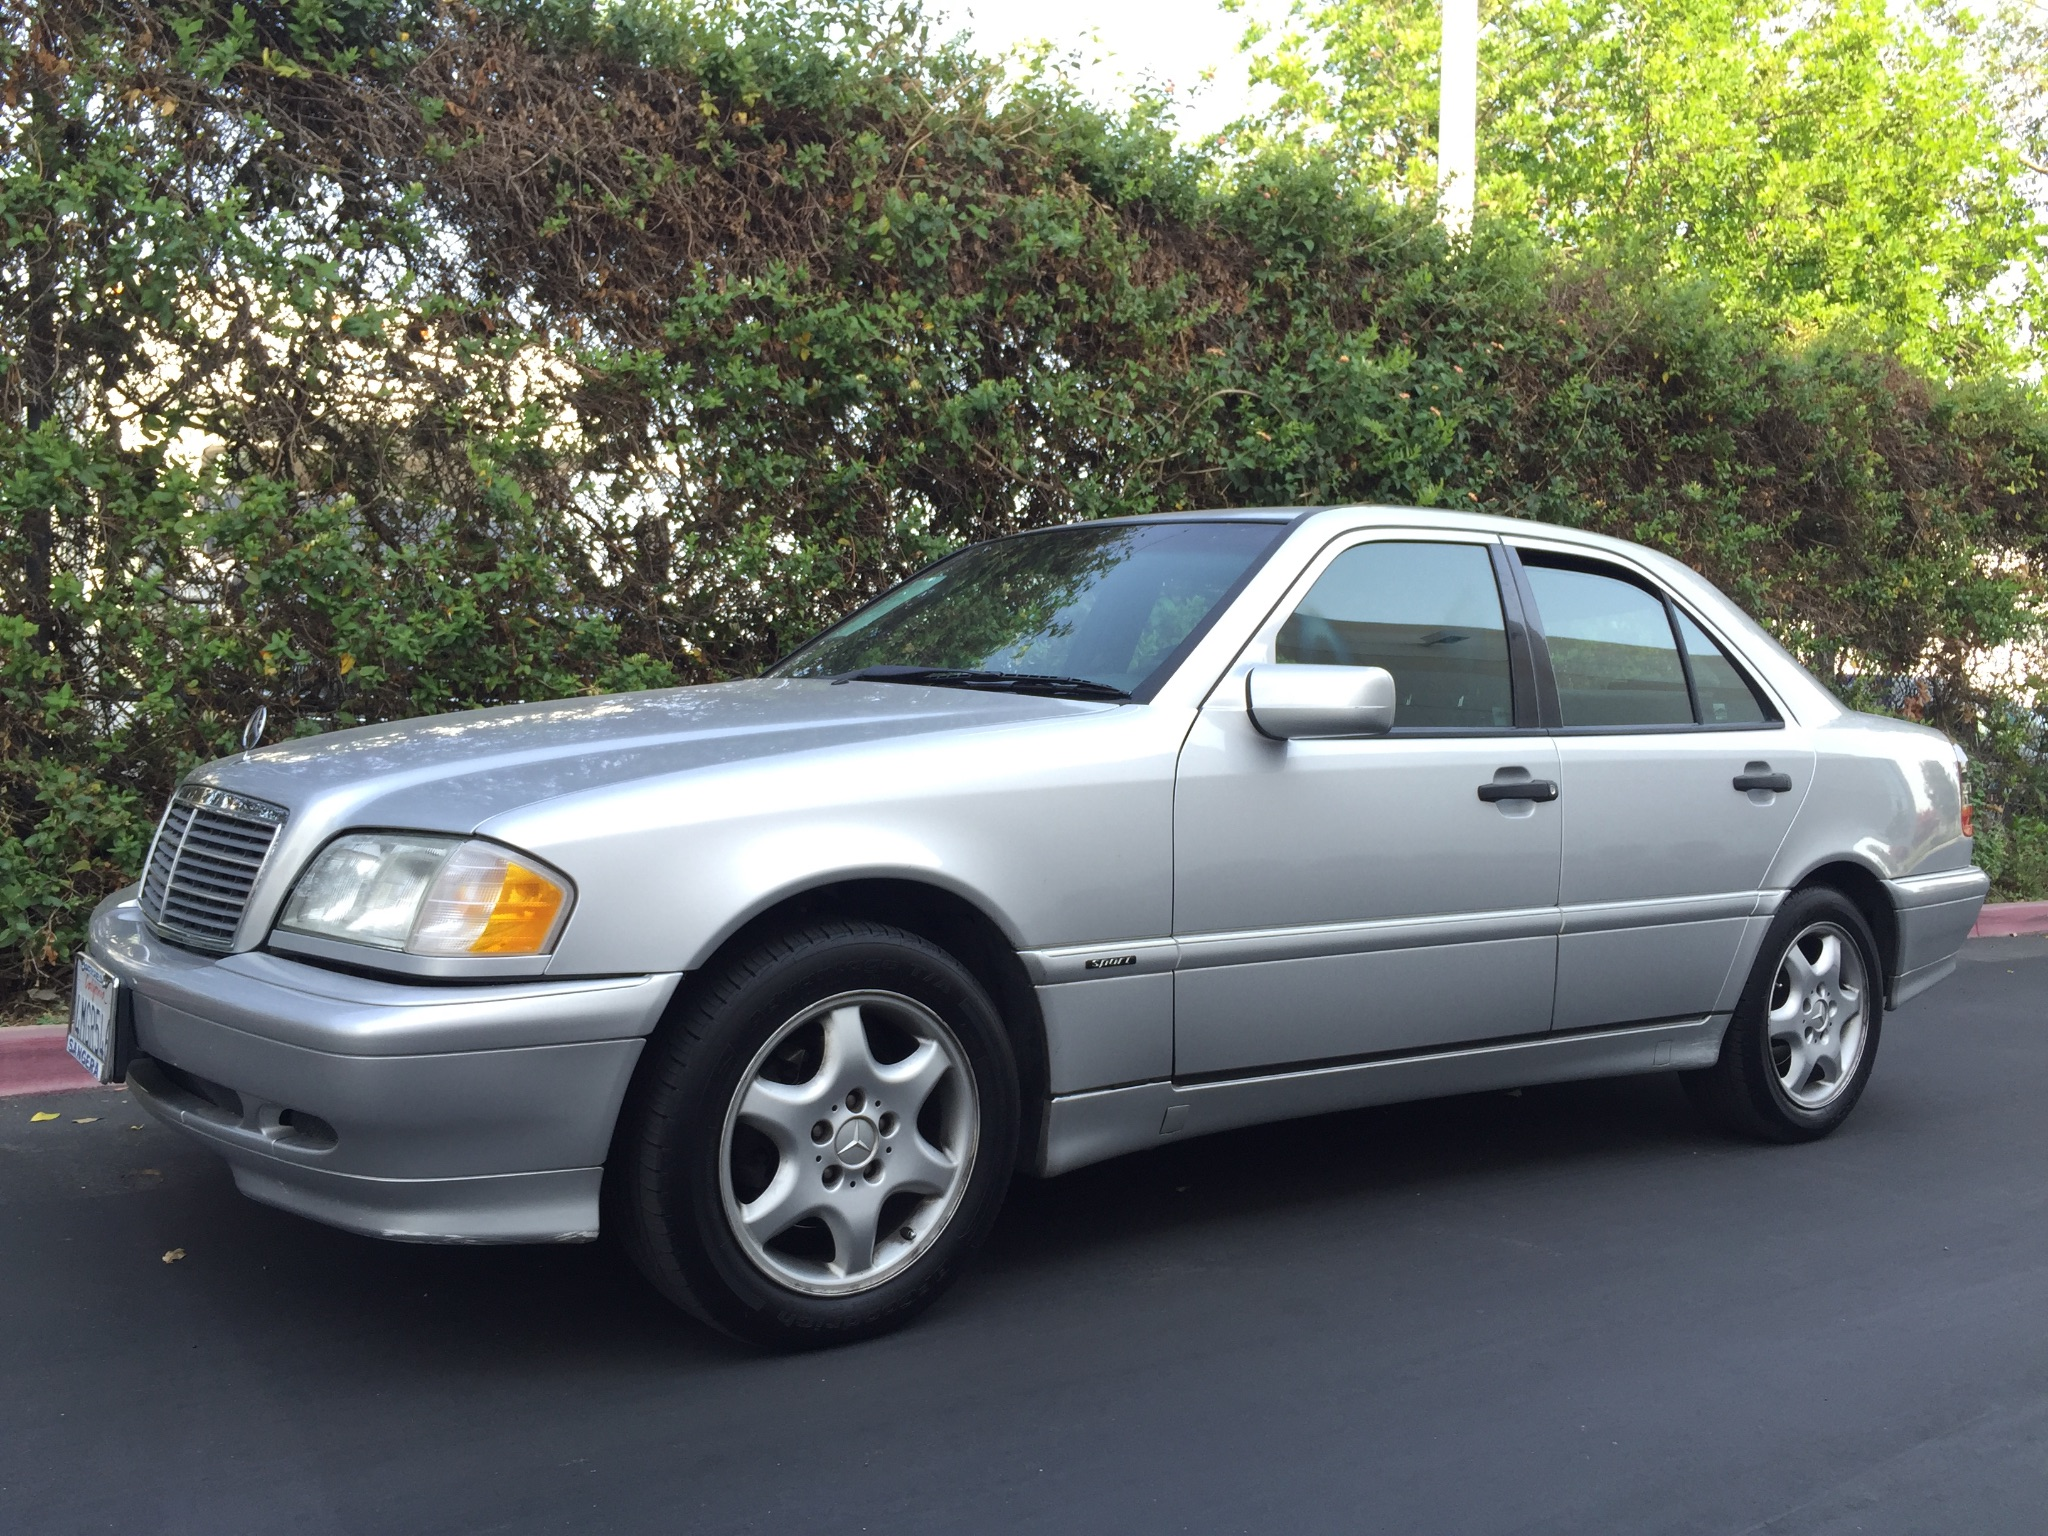 Used 2000 Mercedes Benz C230 Kompressor at City Cars Warehouse INC